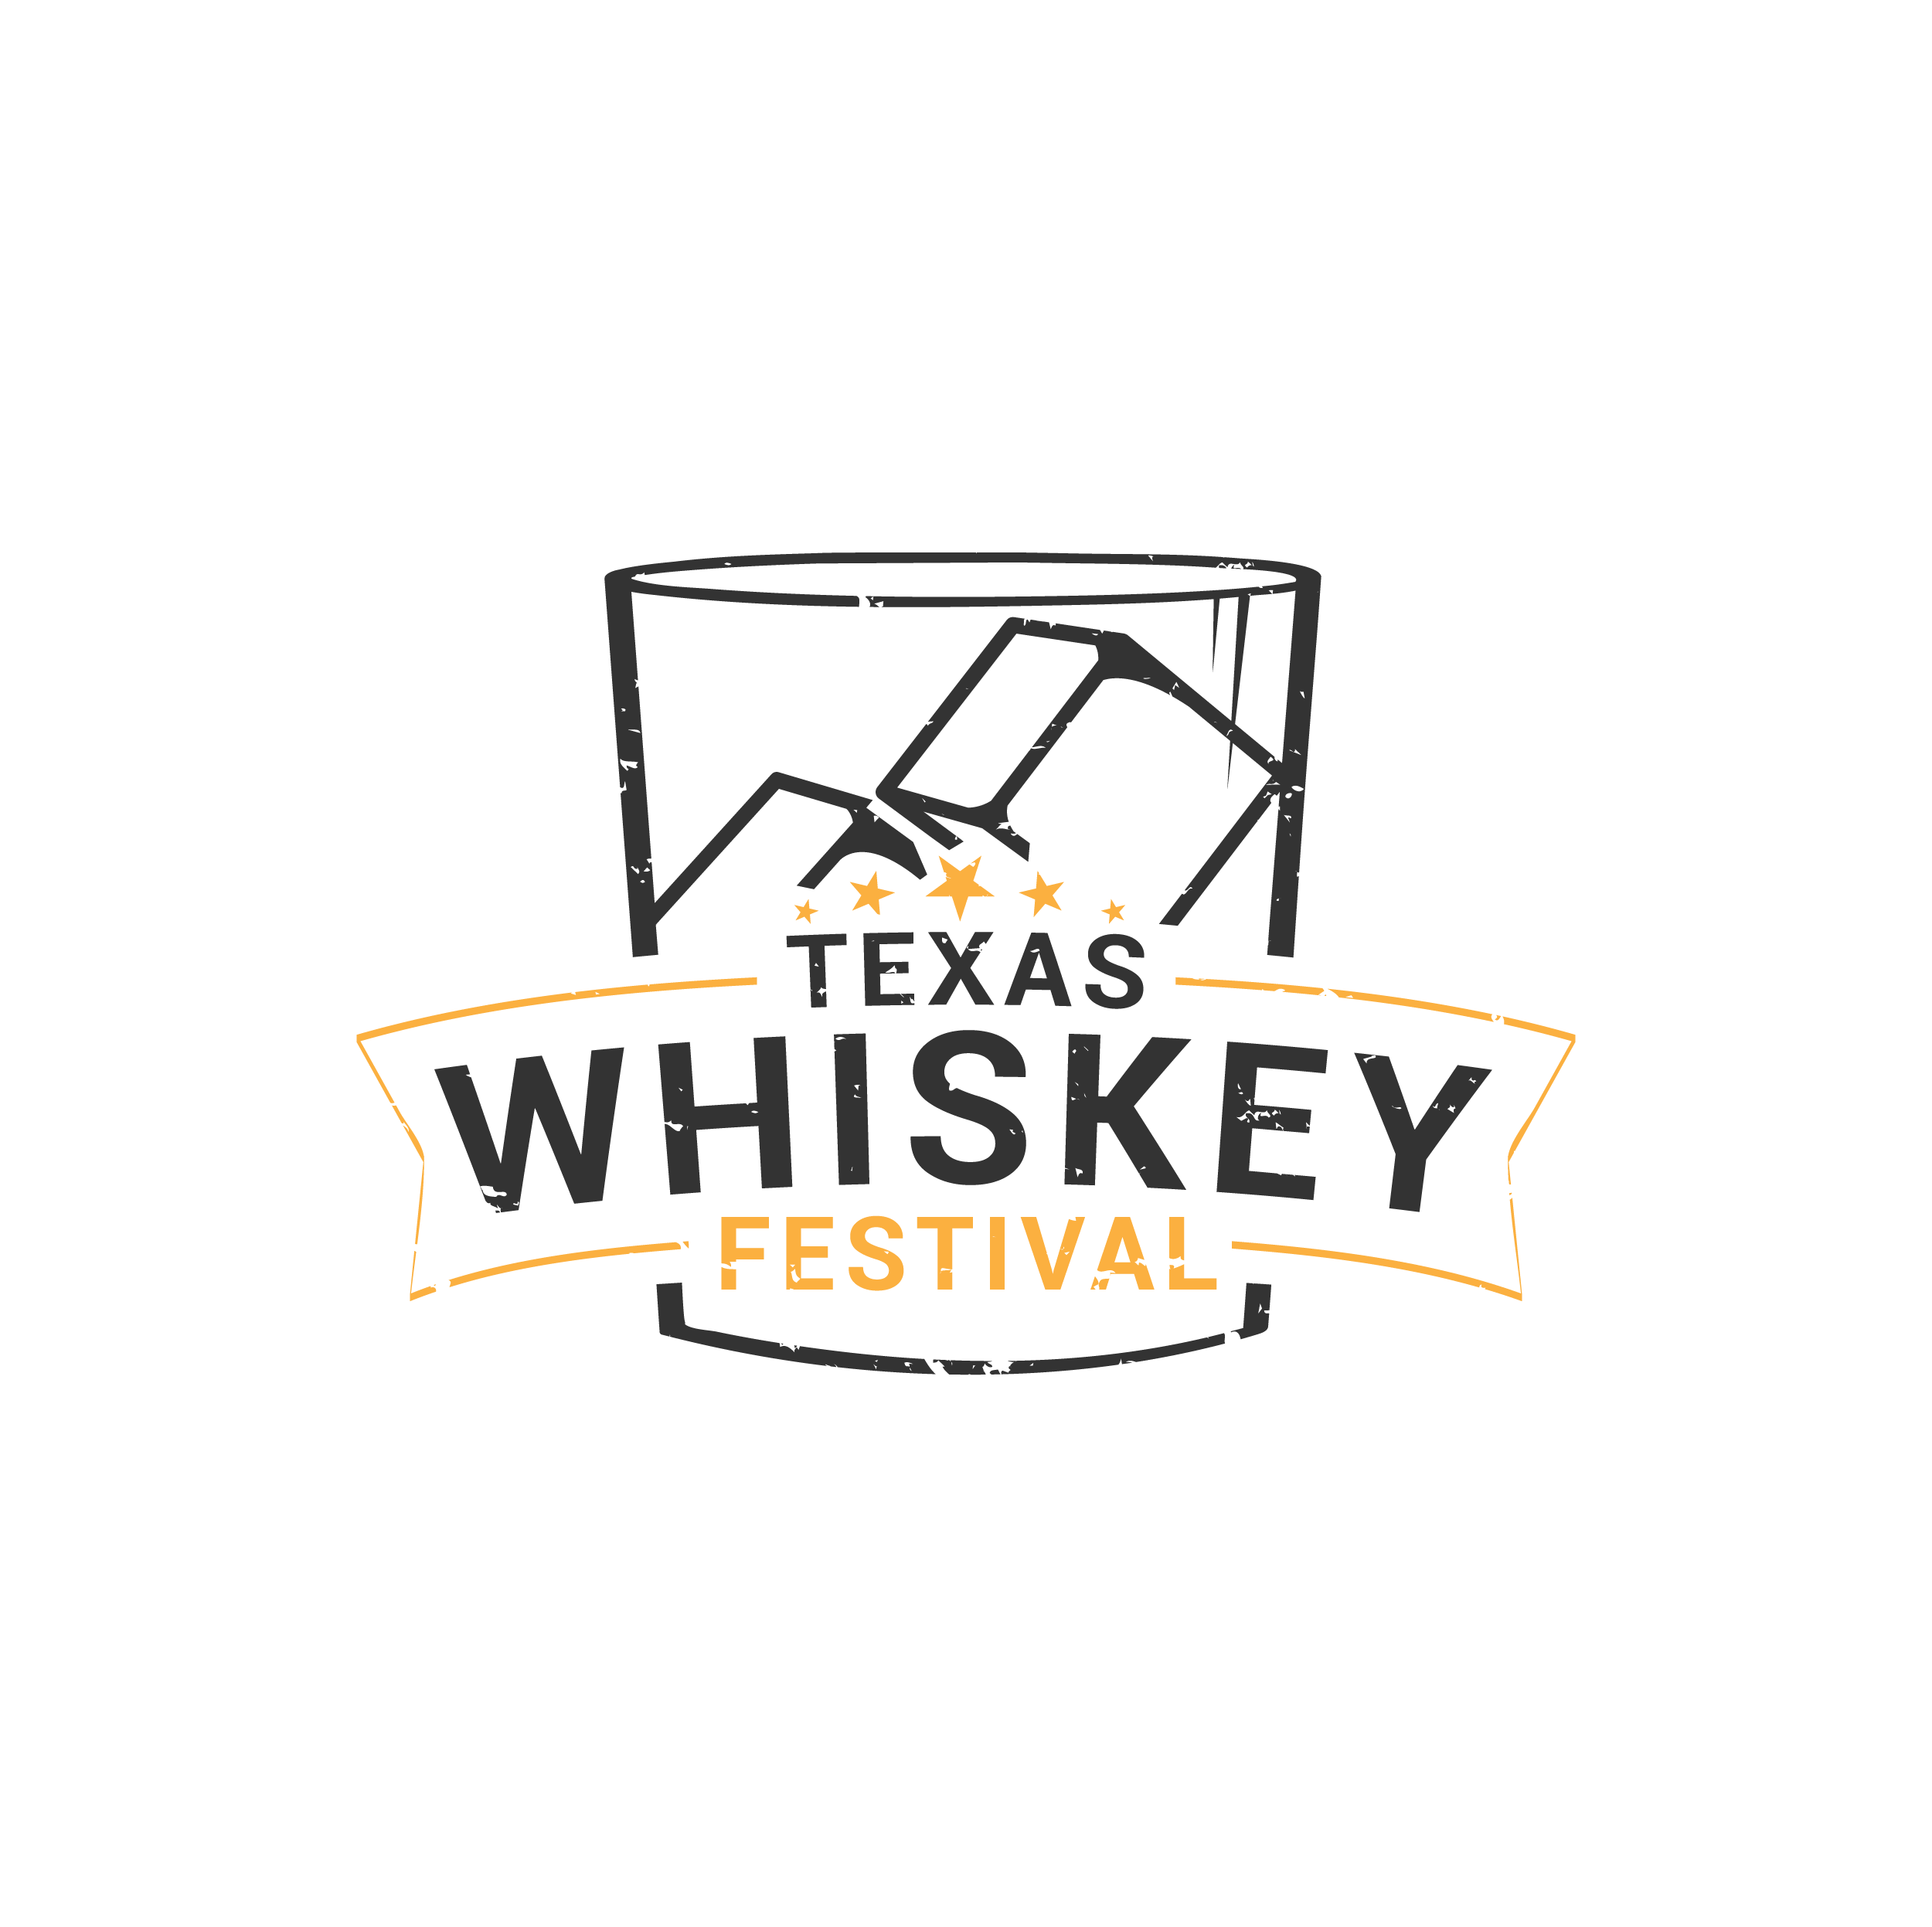 2019 Texas Whiskey Festival